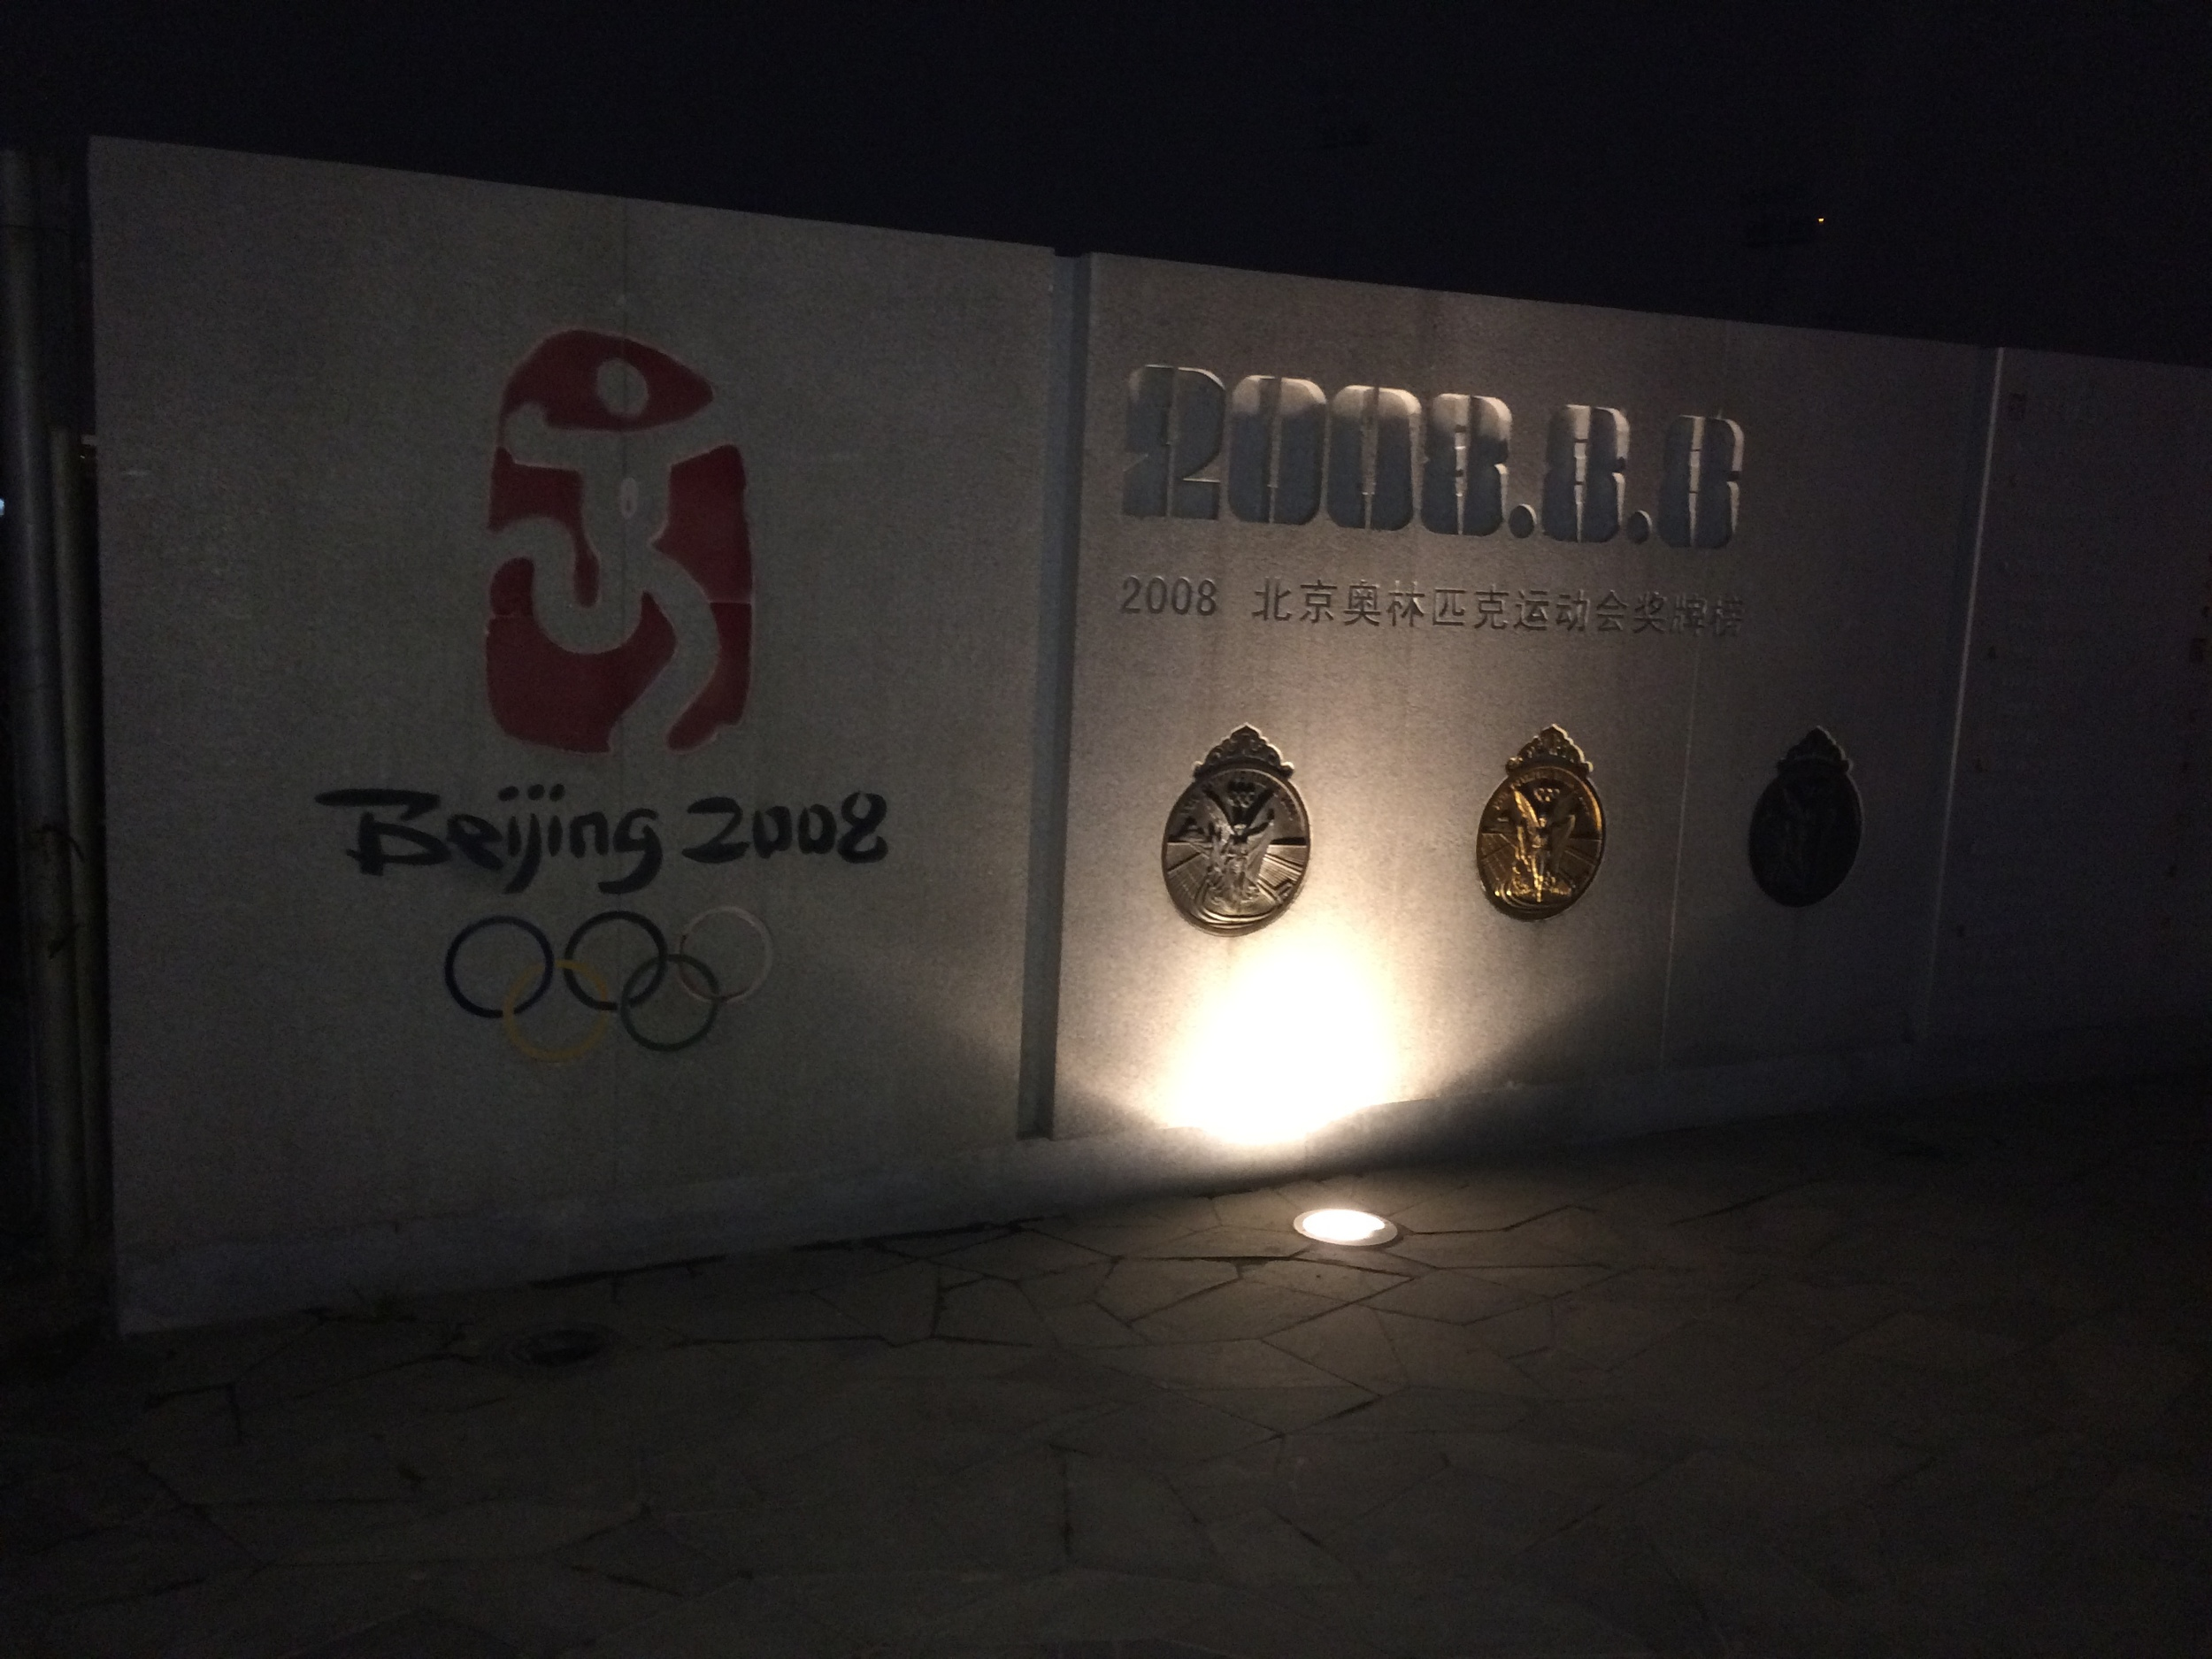 On the path to the Olympic flame, this wall honors each gold, silver, and bronze winner for every sport in the competition. Shawn Johnson and Michael Phelps were names MANY times, as well as the Williams sisters (gold in tennis doubles). 110 medals for the USA (yes, I counted) in 2008 - go team!